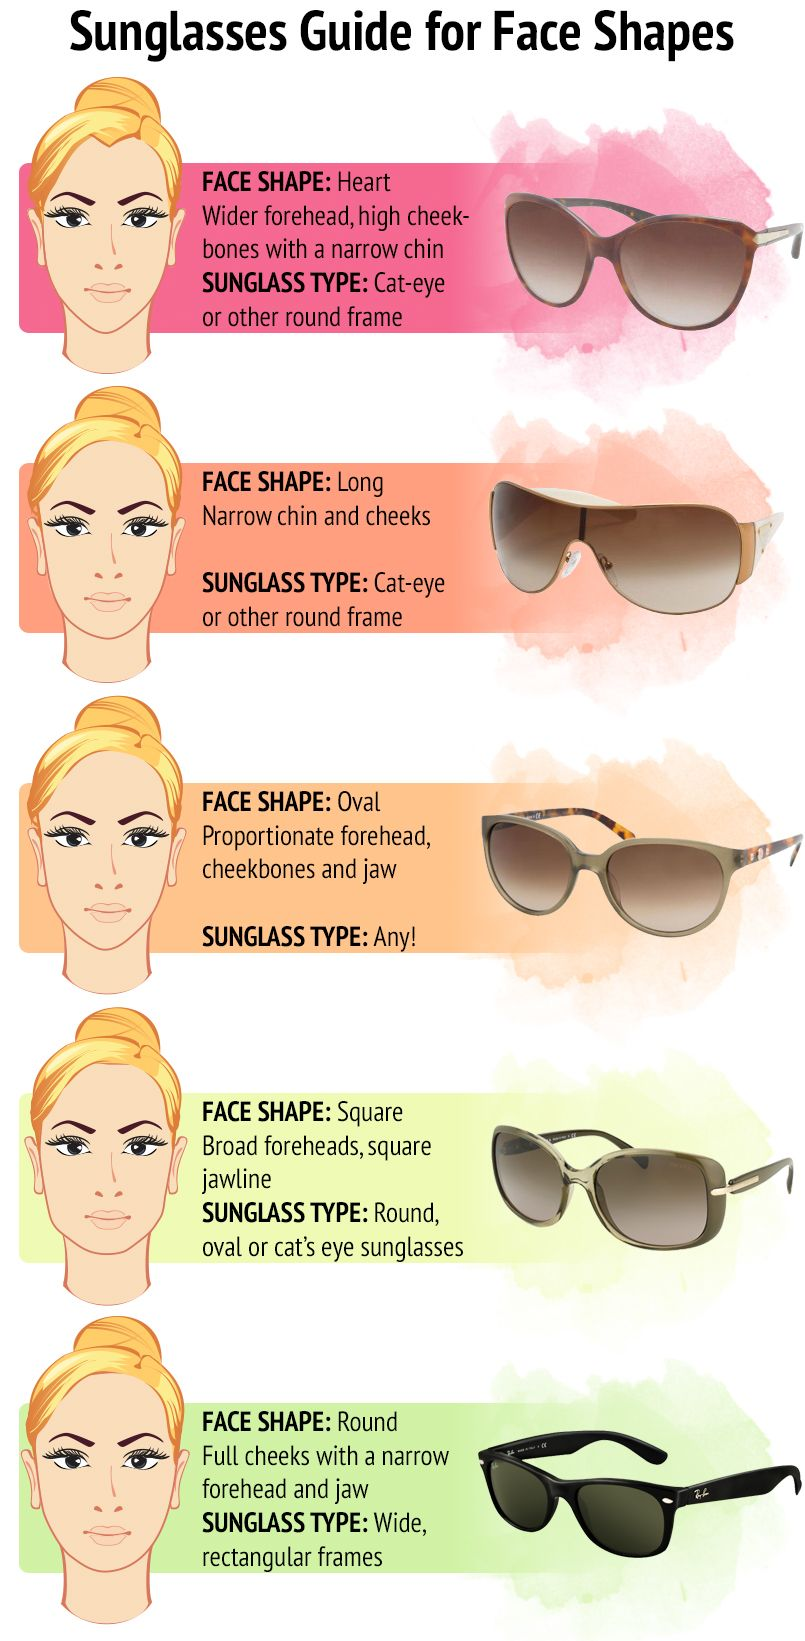 d9703aafd3cf Sunglasses Guide Face Shapes #Infographics | Mishke' fei Shemesh ...